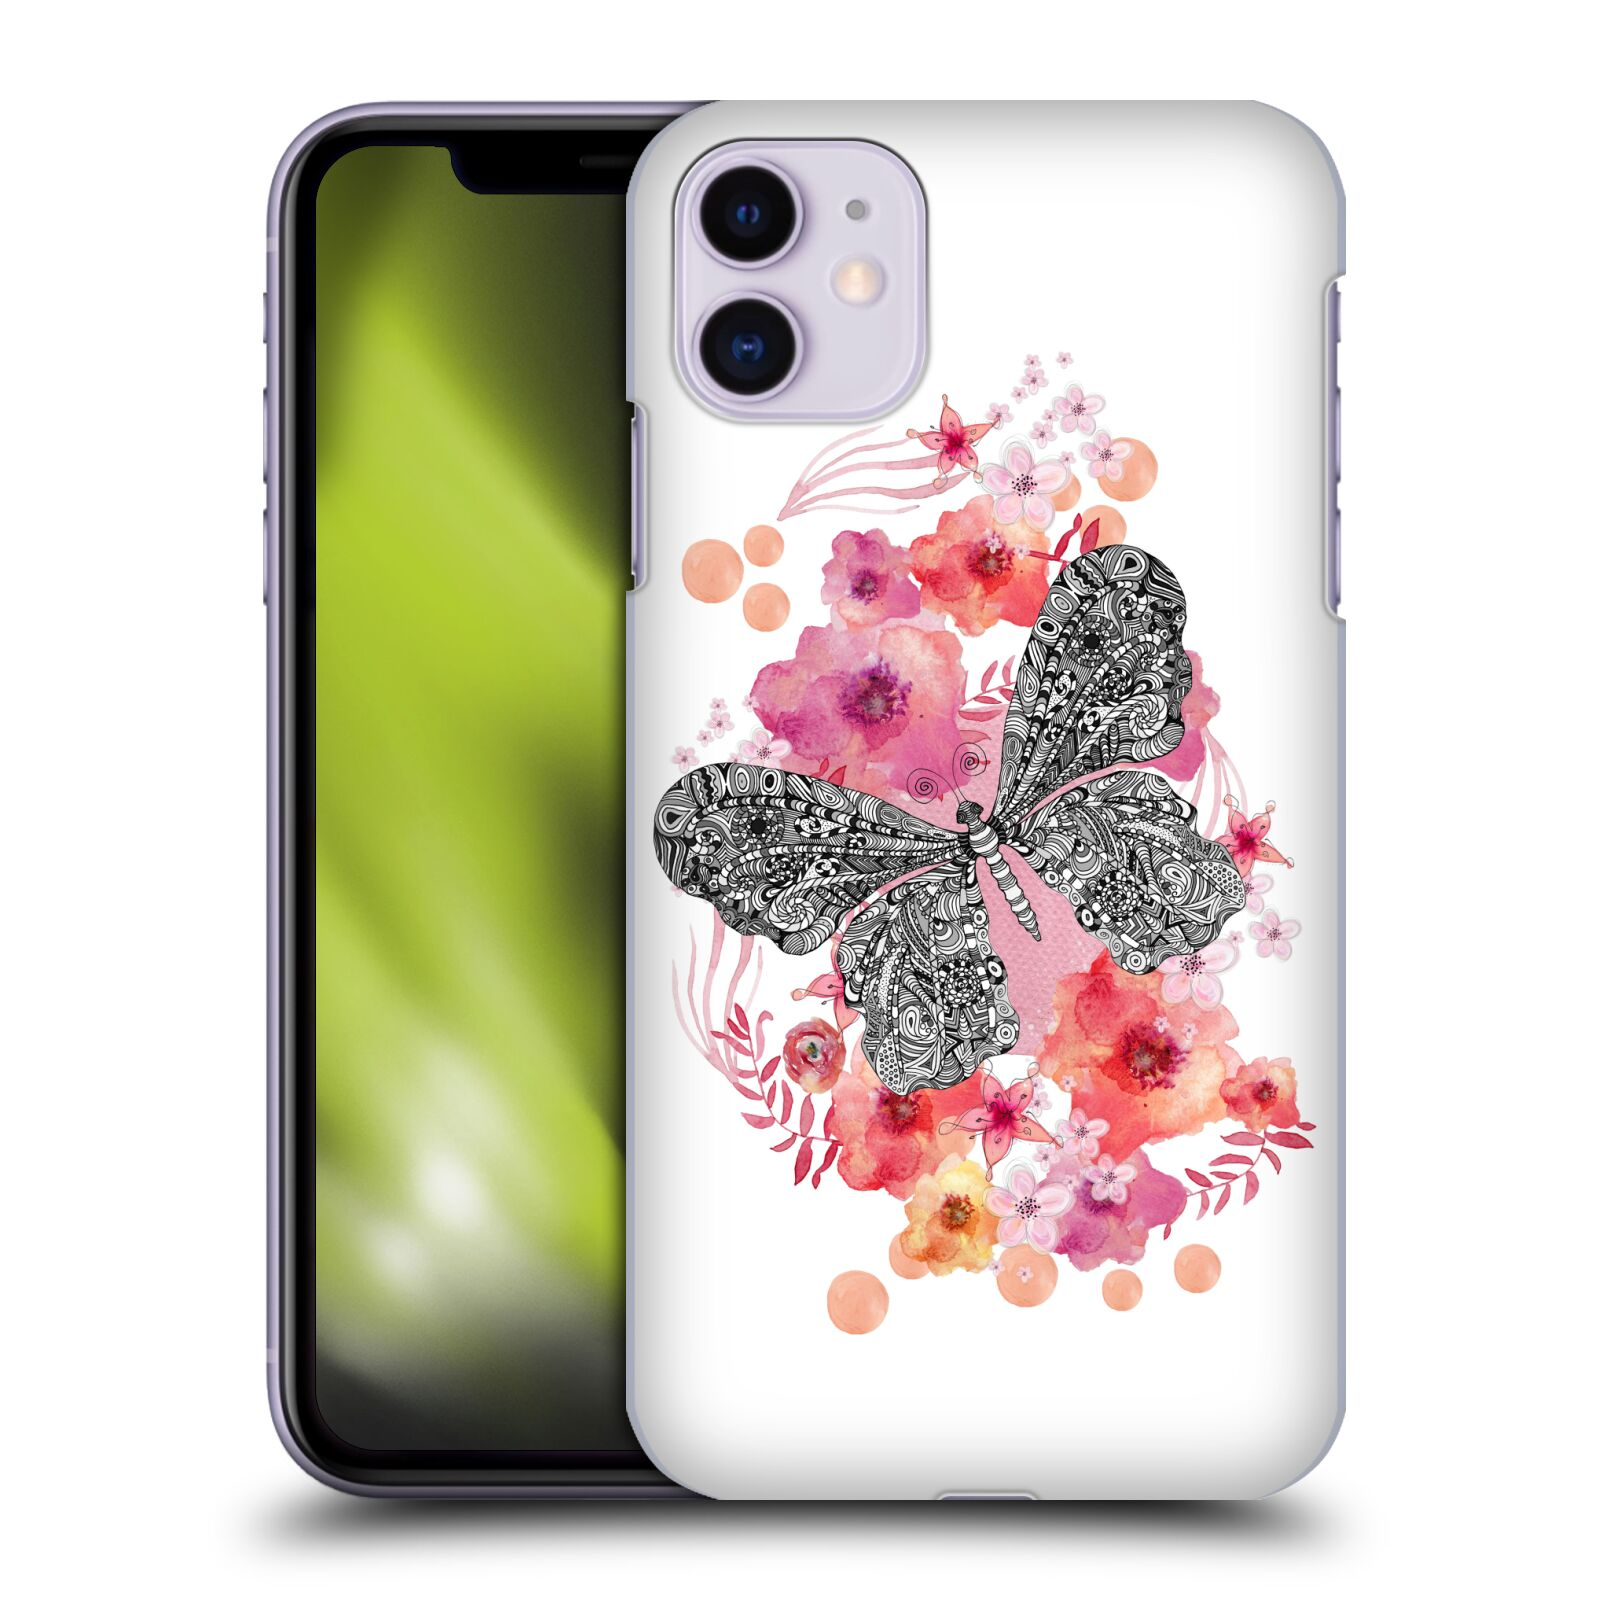 Official Monika Strigel Animals And Flowers Butterfly Case for Apple iPhone 11